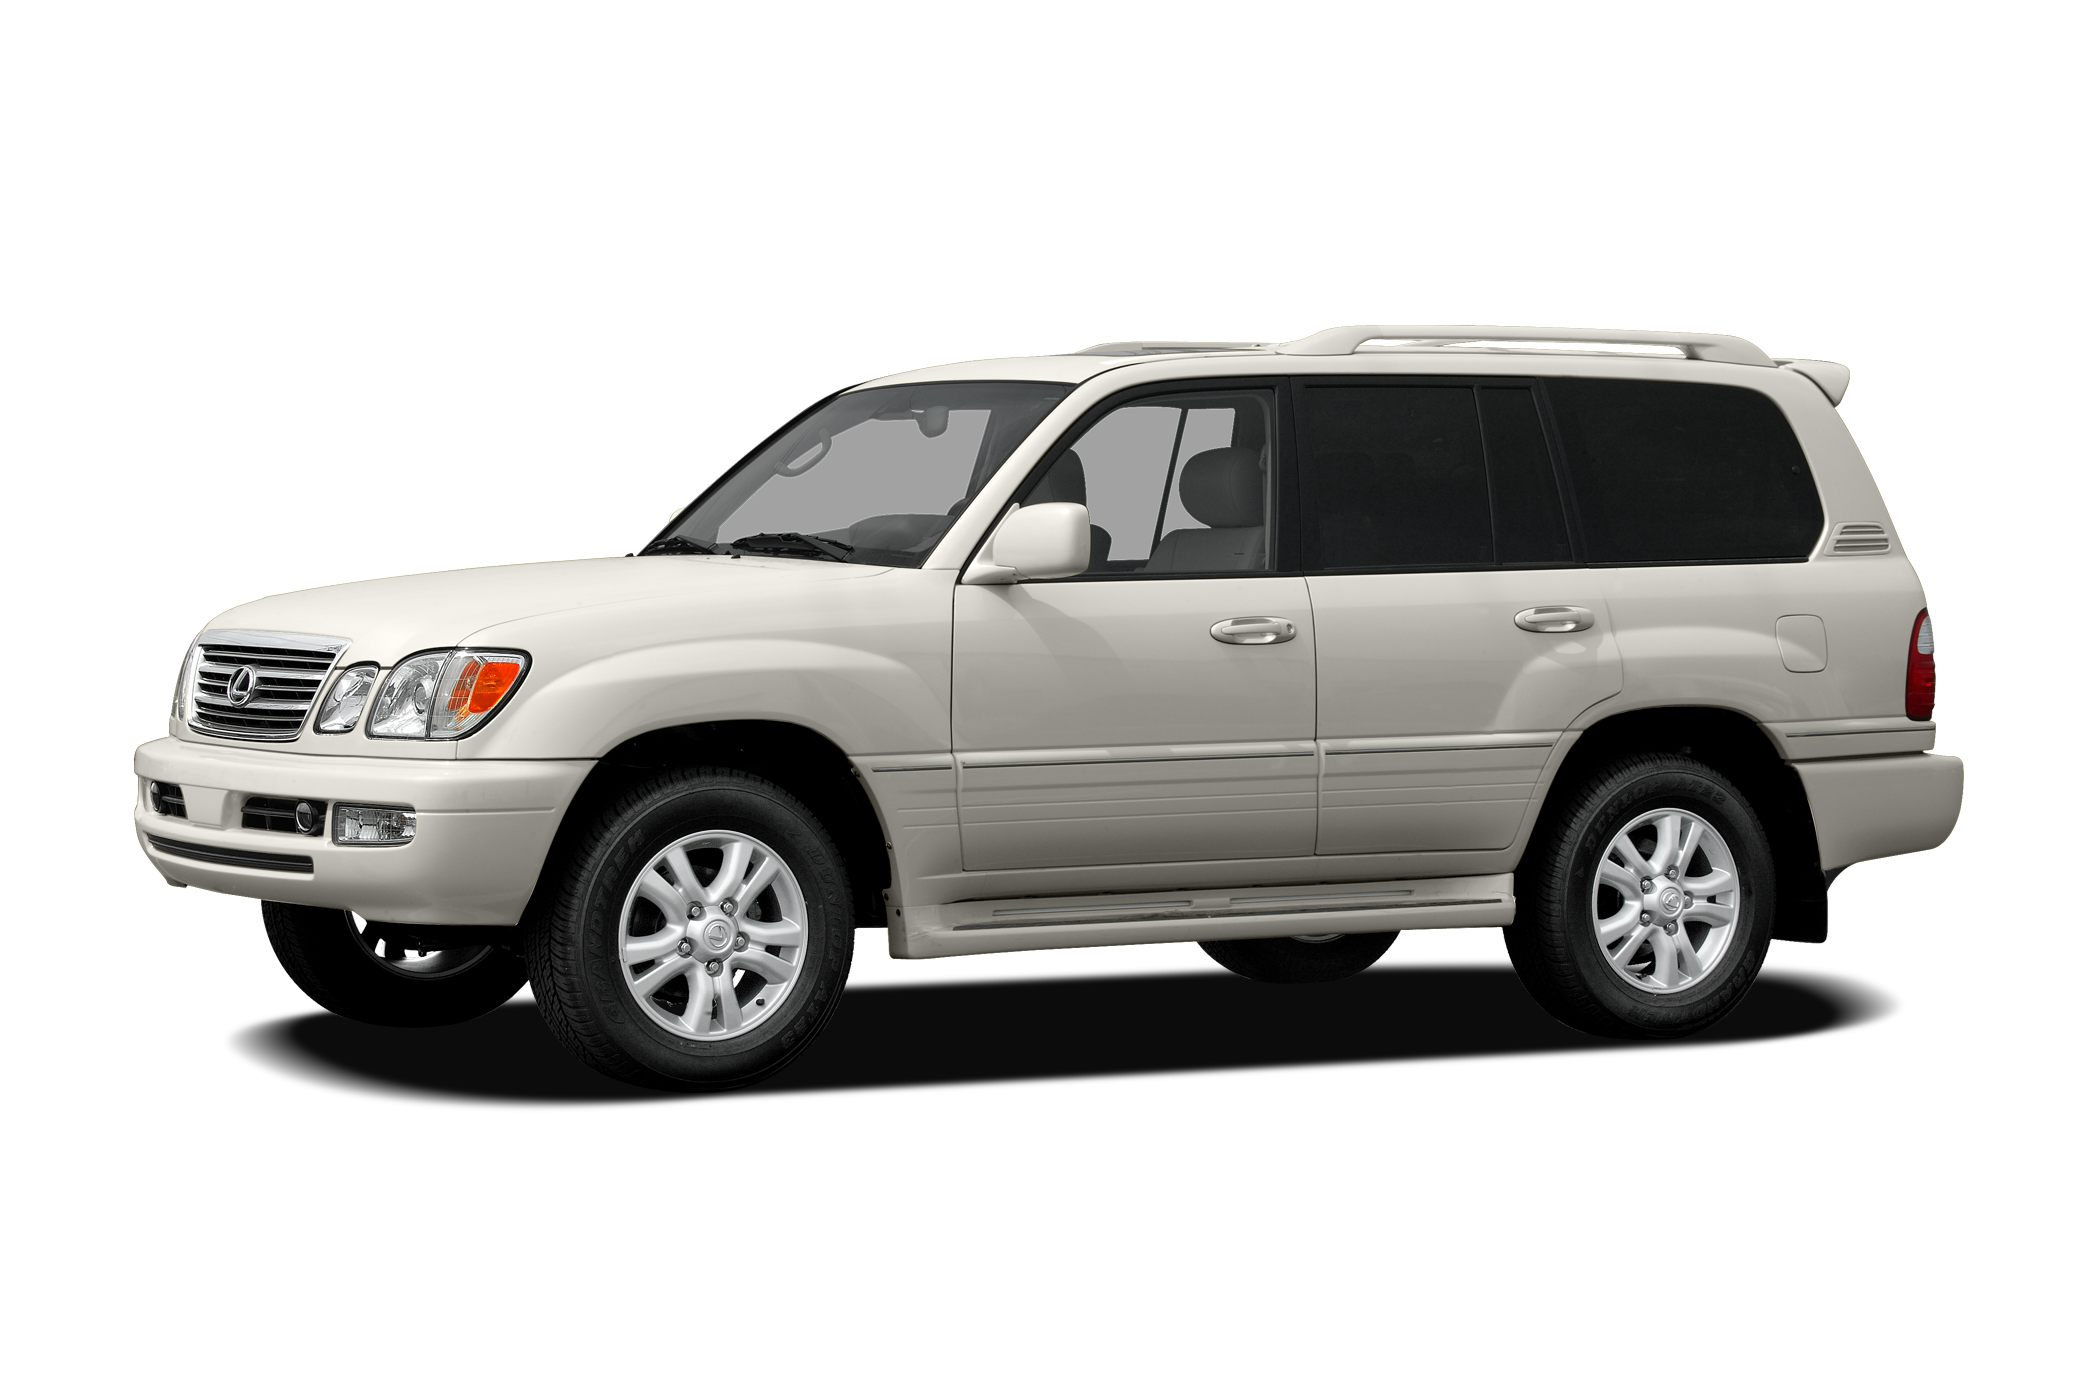 2007 Lexus LX 470 Base IMMACULATECARAFAX CERTIFIEDRARE FINDDEALER MAINTAINED NAVIGATION